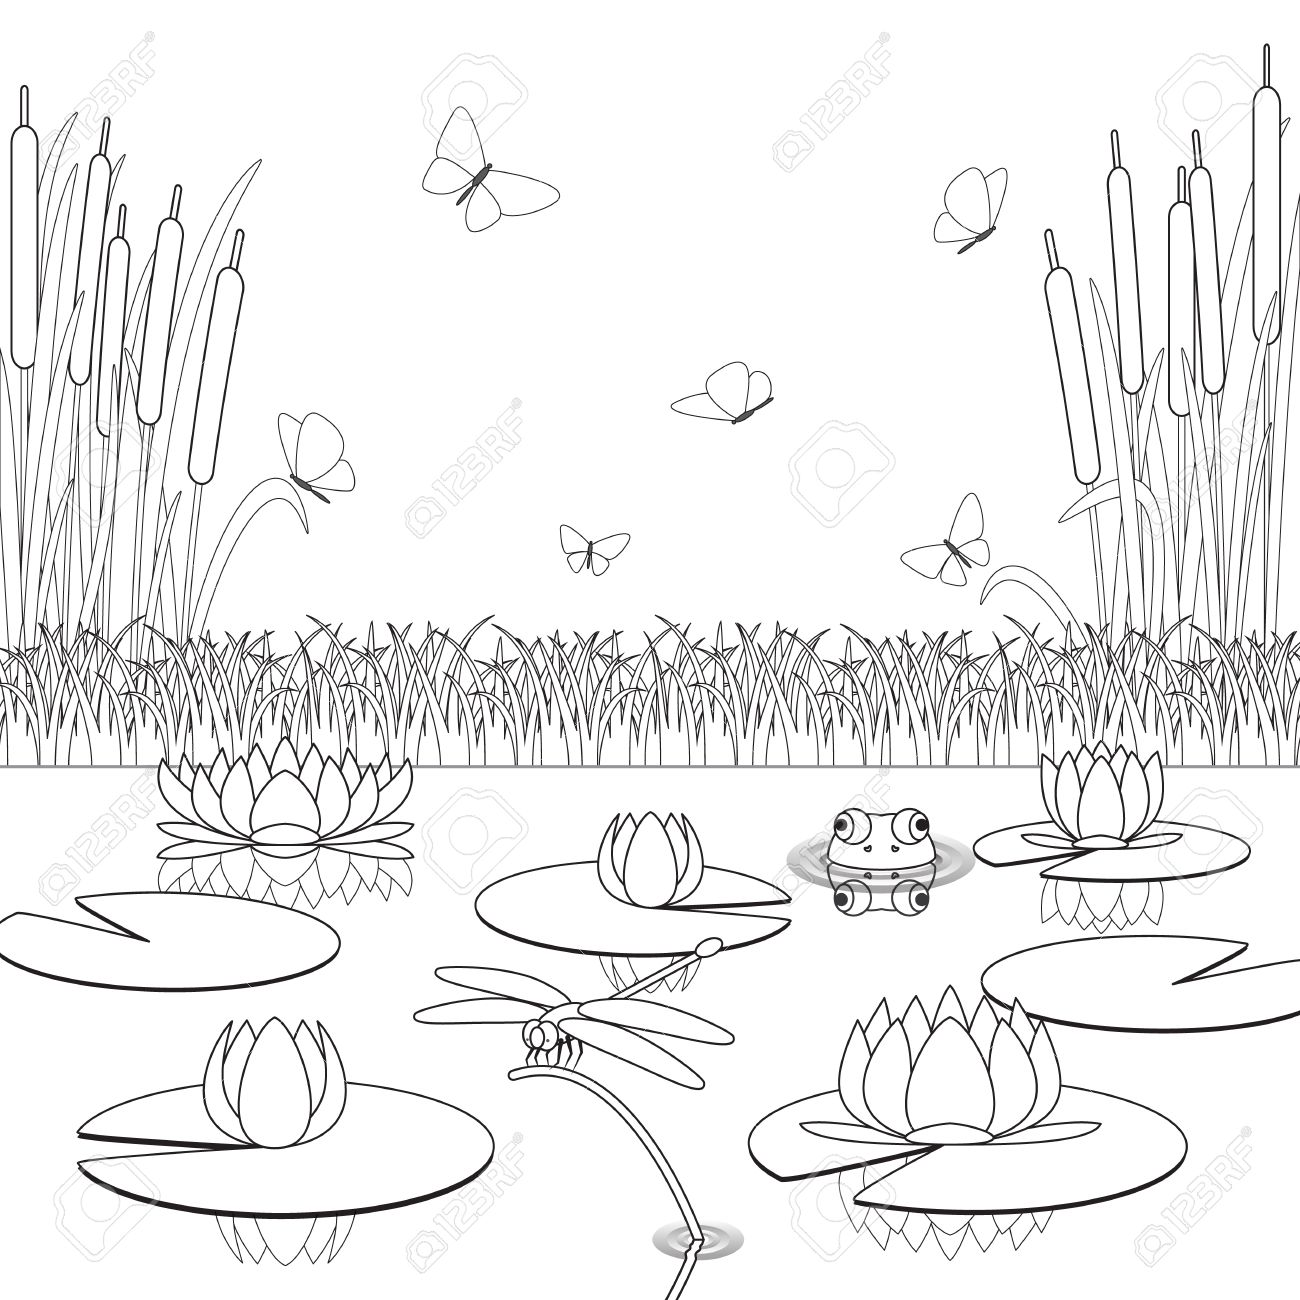 Coloring Page With Pond Inhabitants And Plants. Vector ...